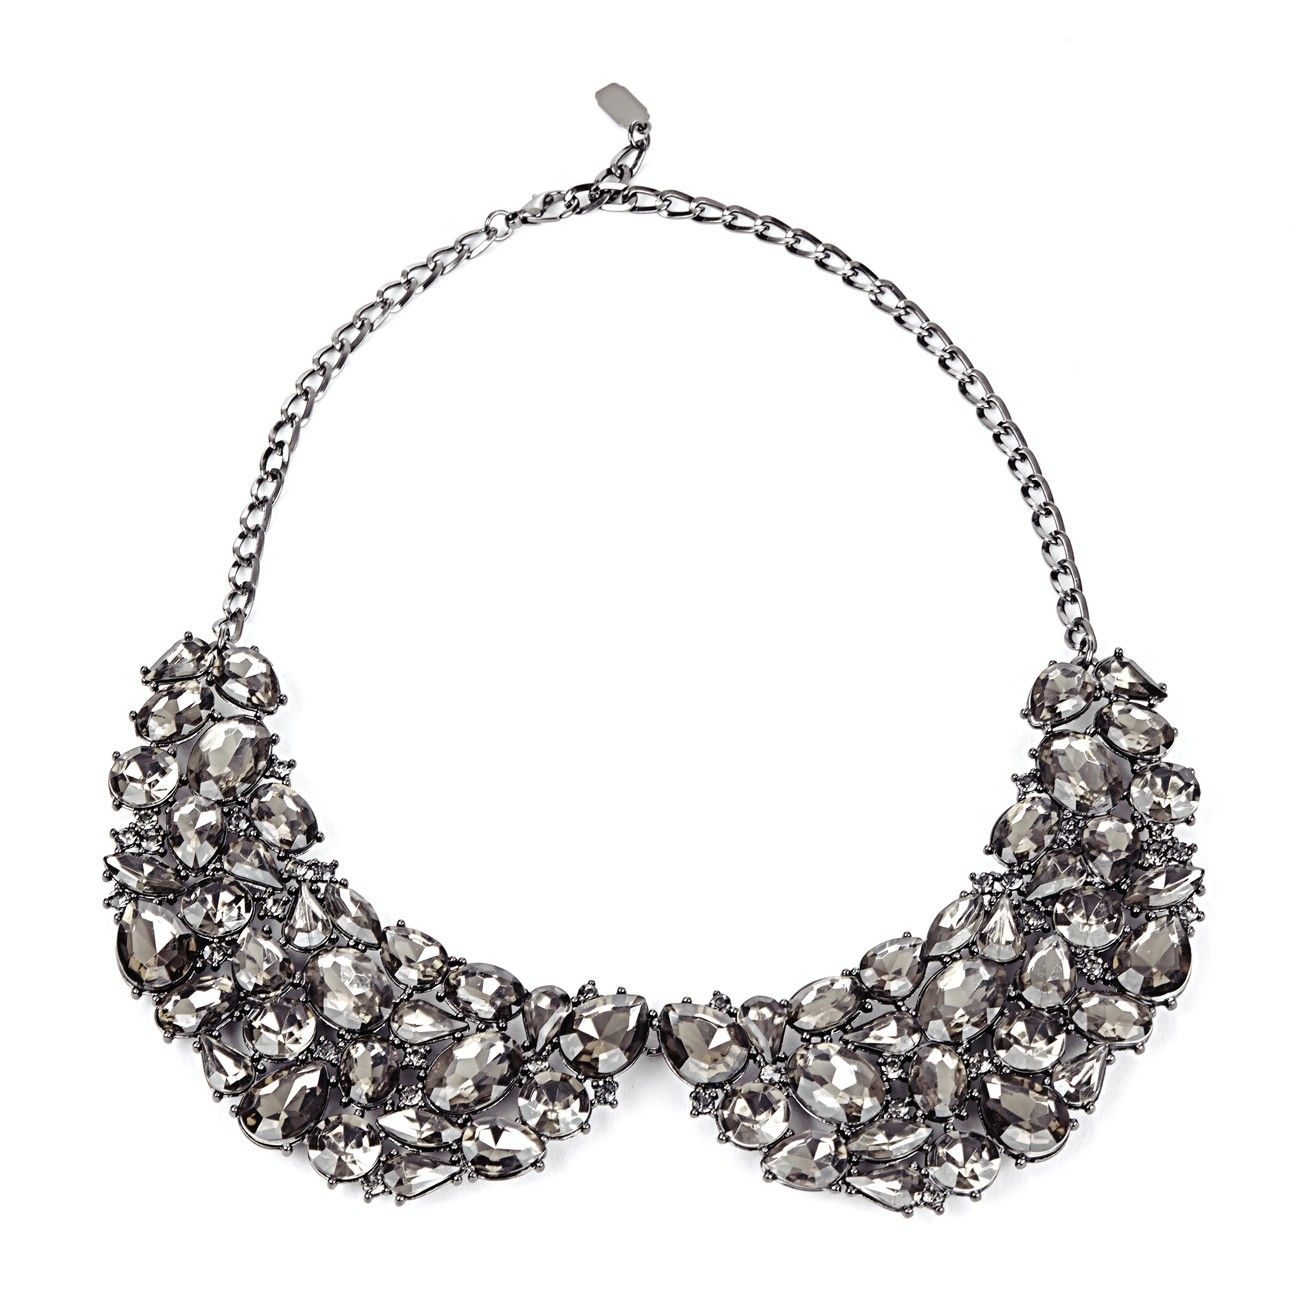 Sole Society Womens Over Statement Bib Necklace In Color: Black One Size From Sole Society 2mUFn